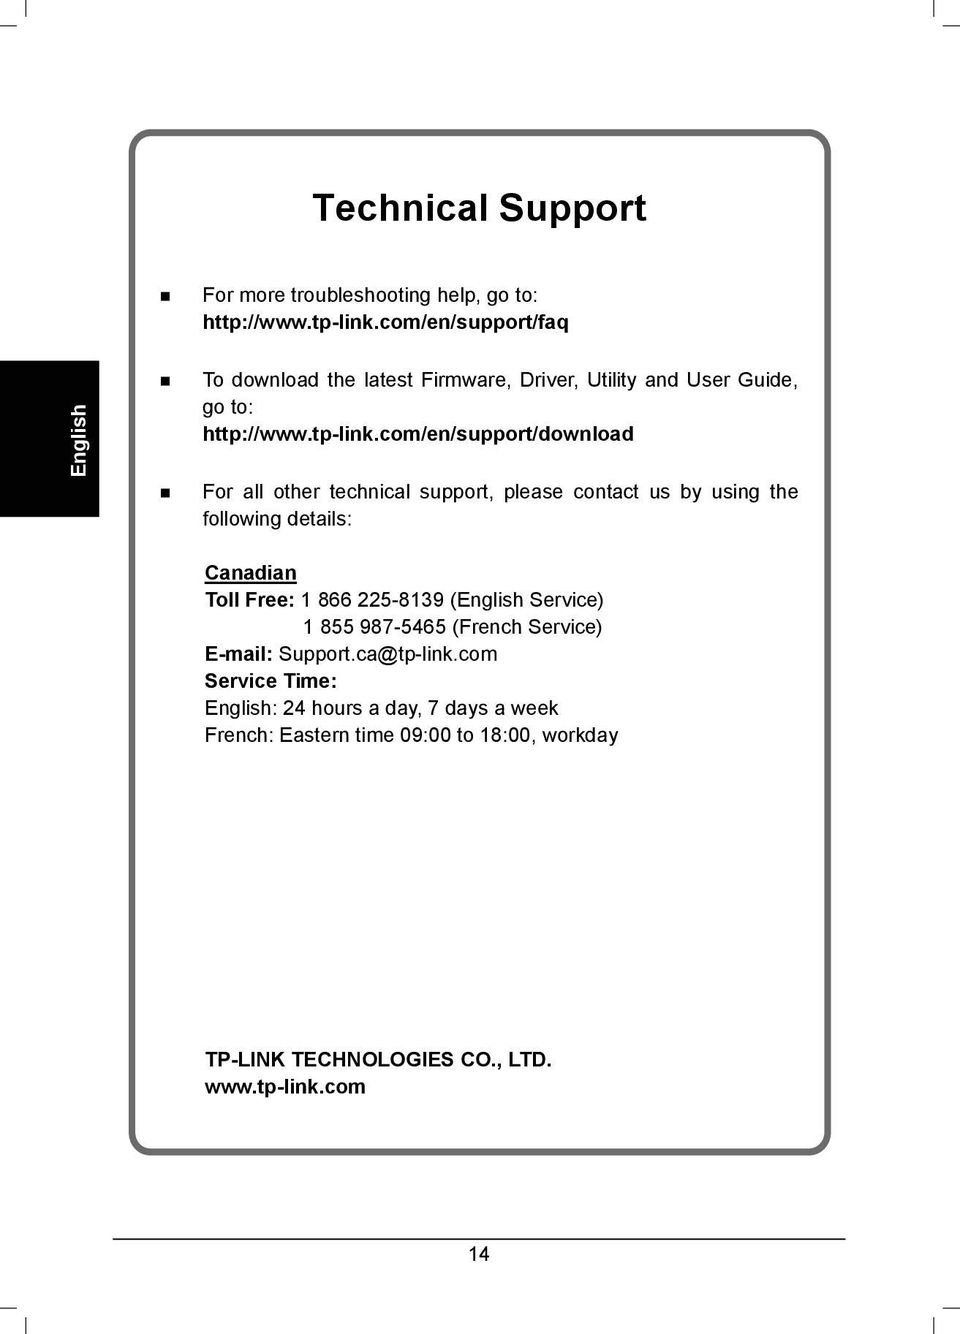 com/en/support/download For all other technical support, please contact us by using the following details: Canadian Toll Free: 1 866